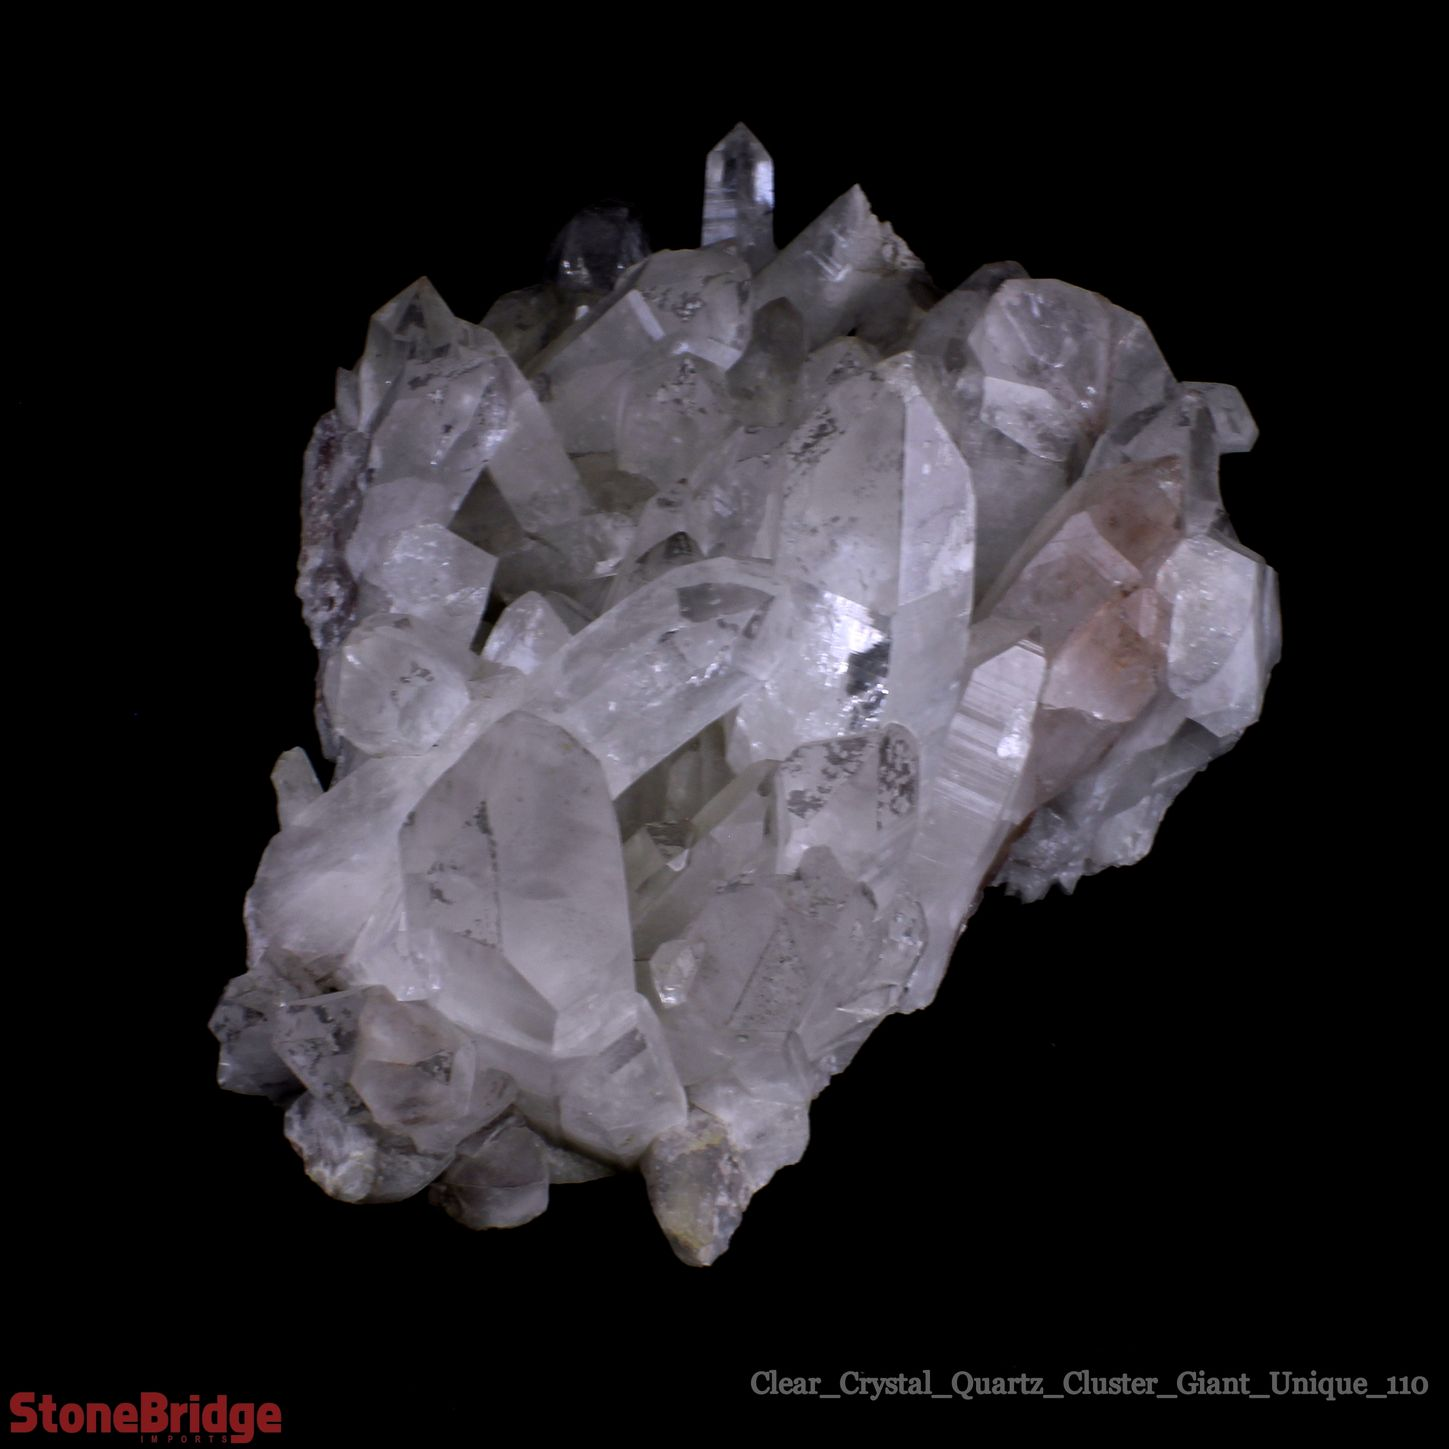 CLCRU110_Clear_Crystal_Quartz_Cluster_Giant_Unique_11016.jpg